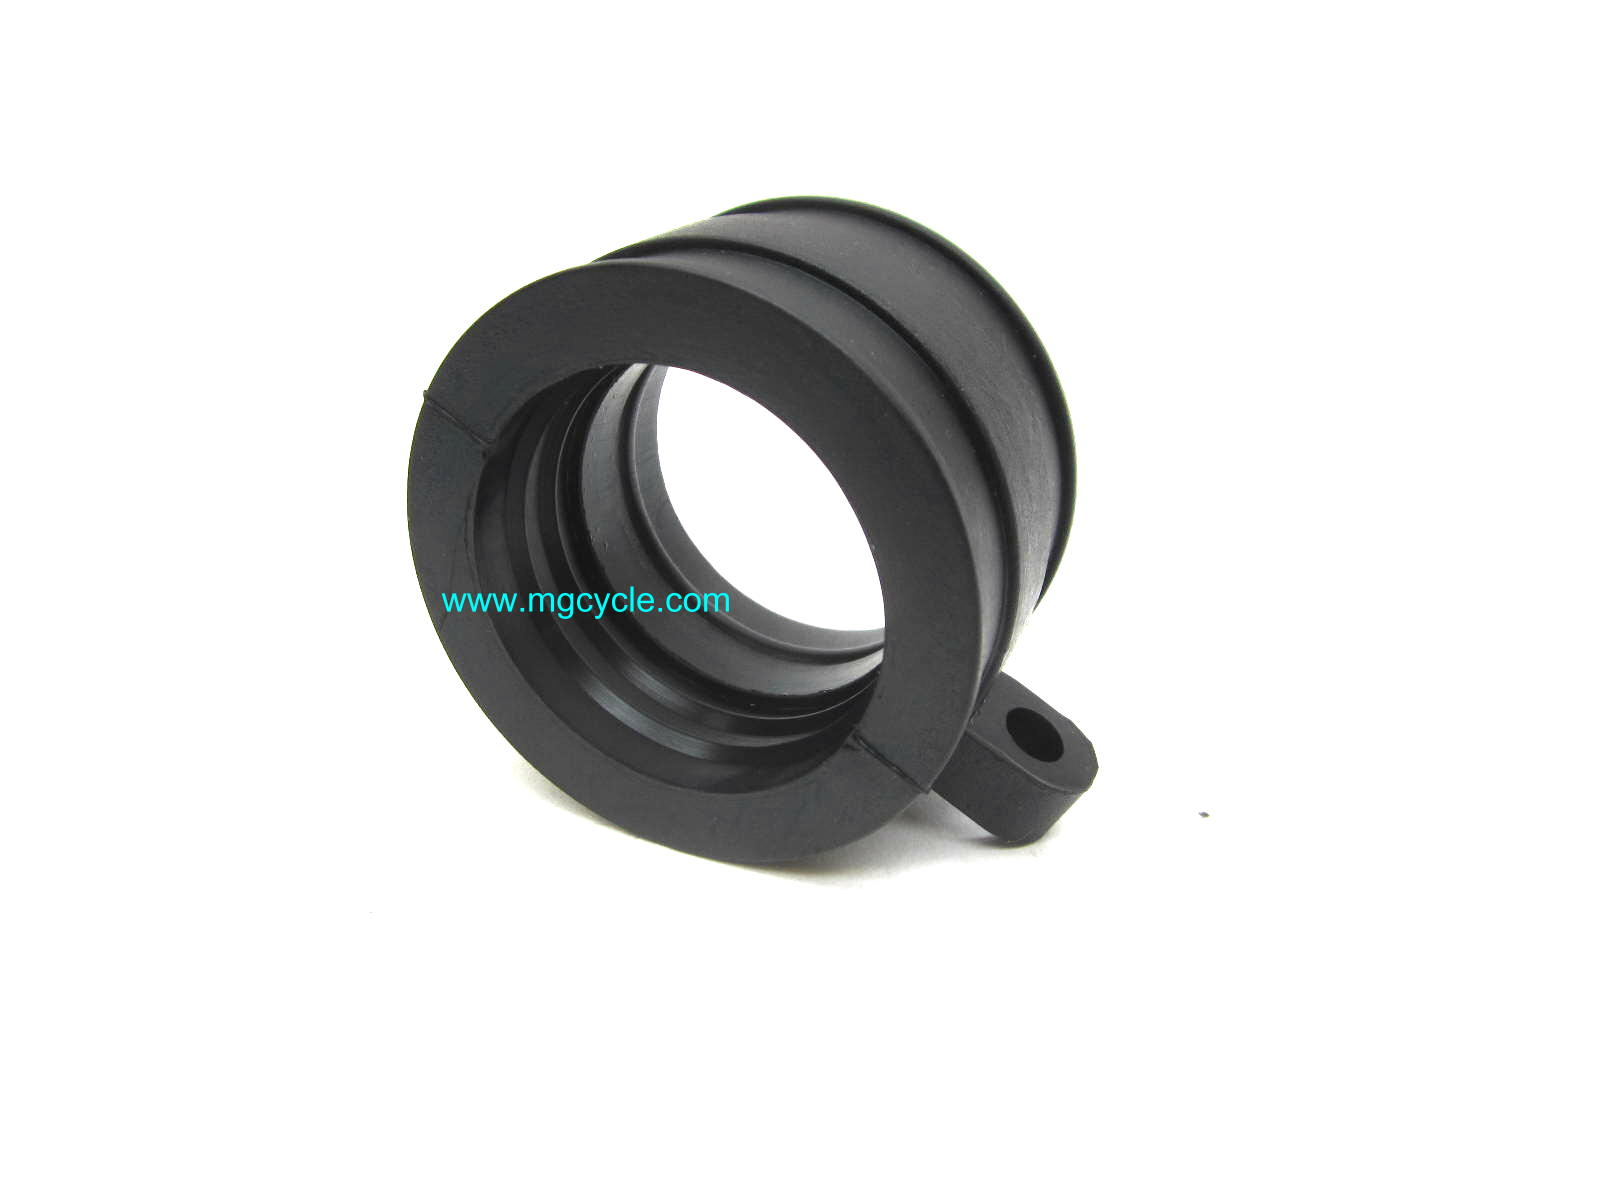 Intake rubber sleeve, 40mm GU28114360